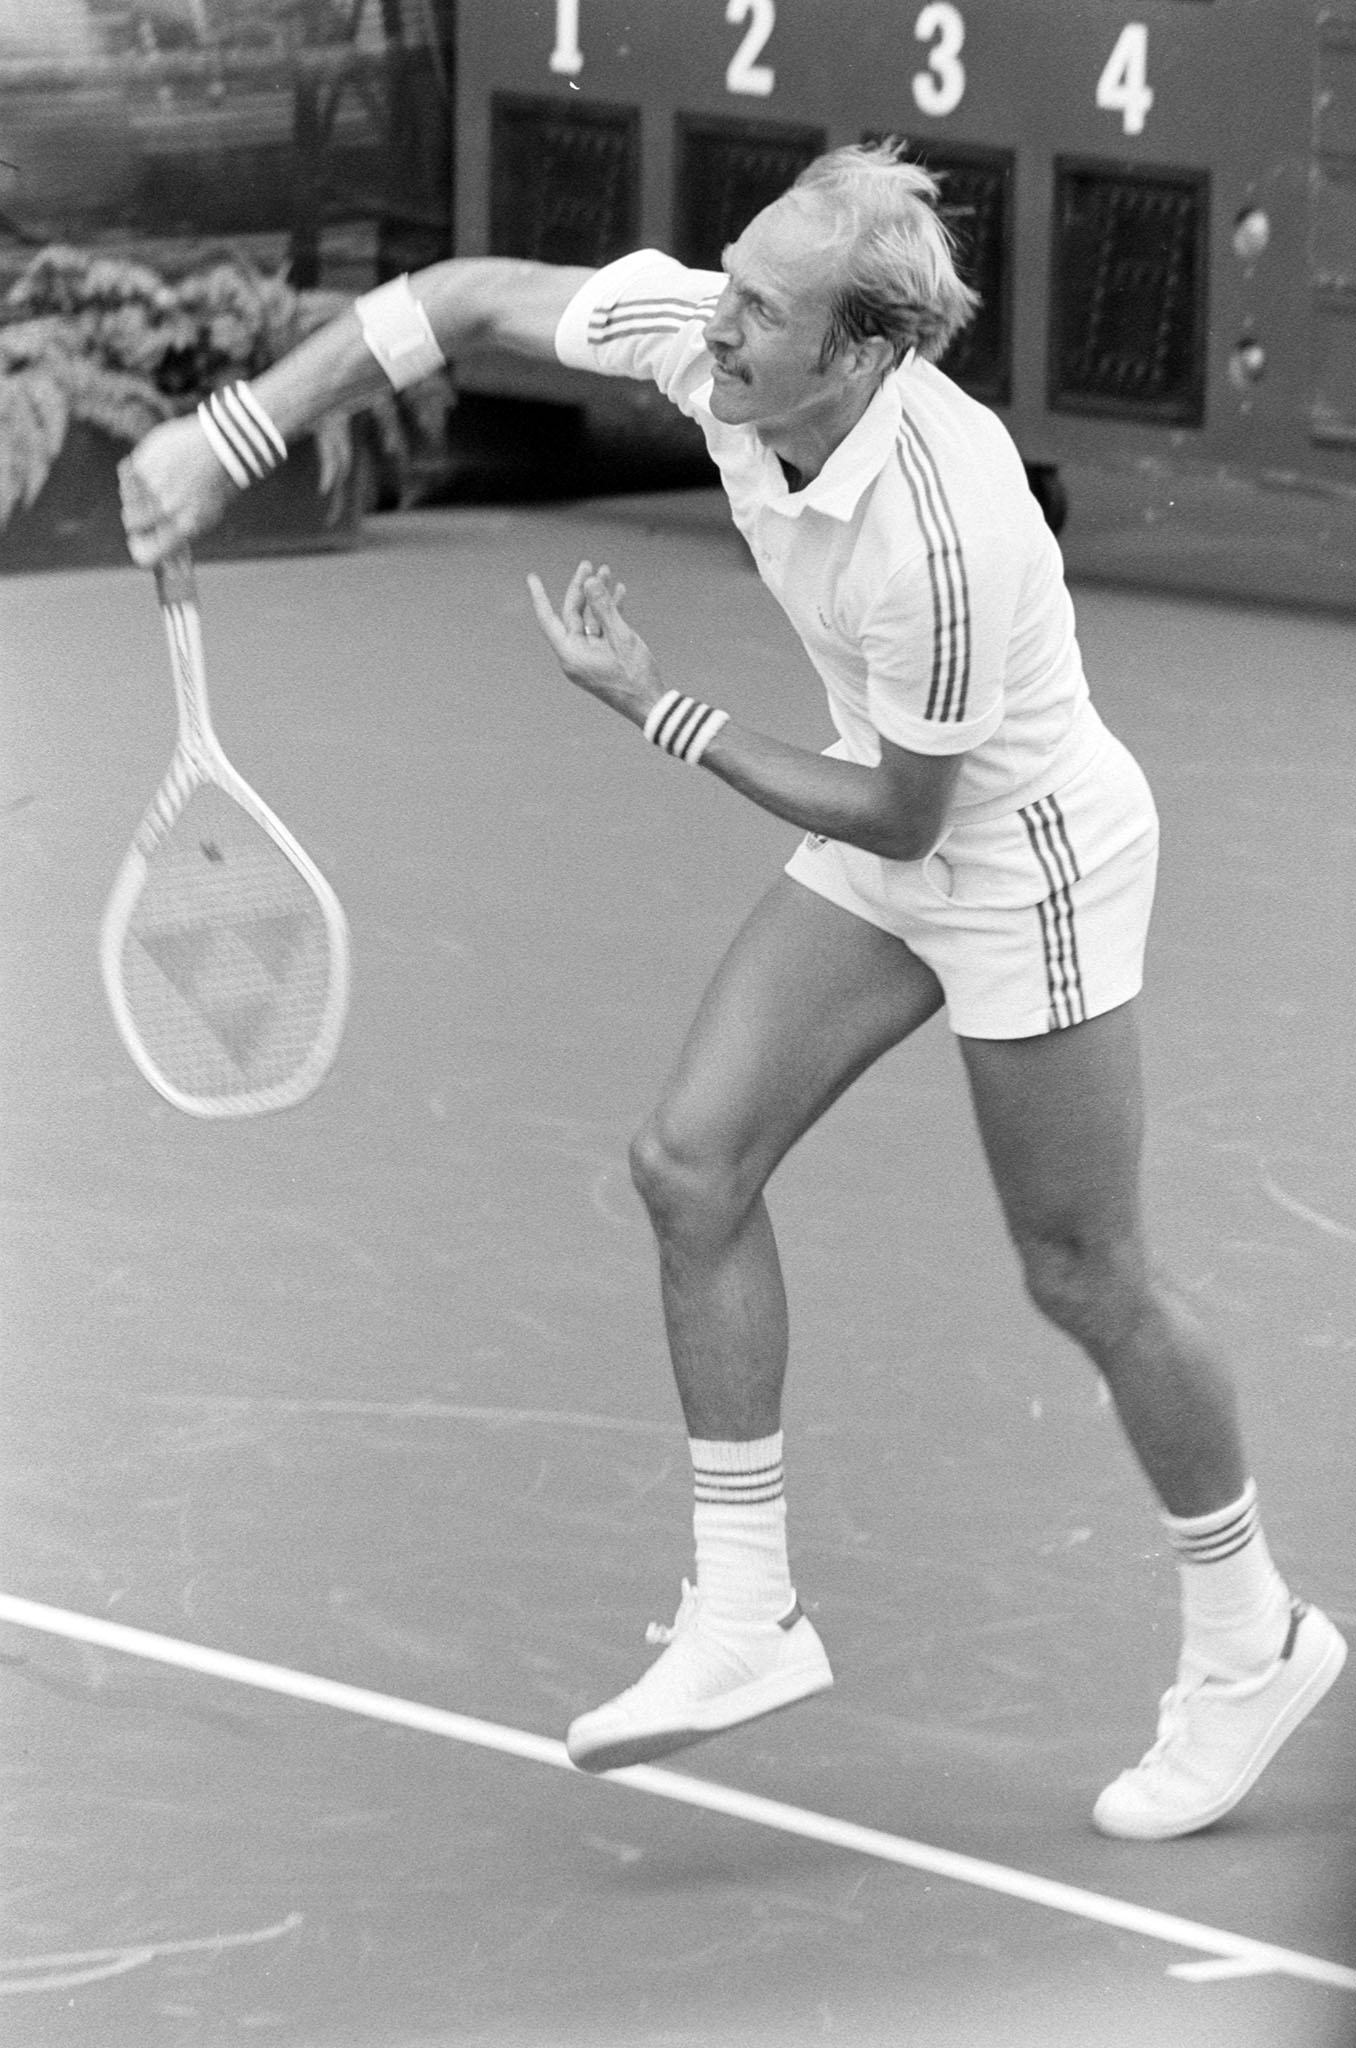 Stan Smith competes in the US Open Grand Slam Tournaments in New York, 1981.